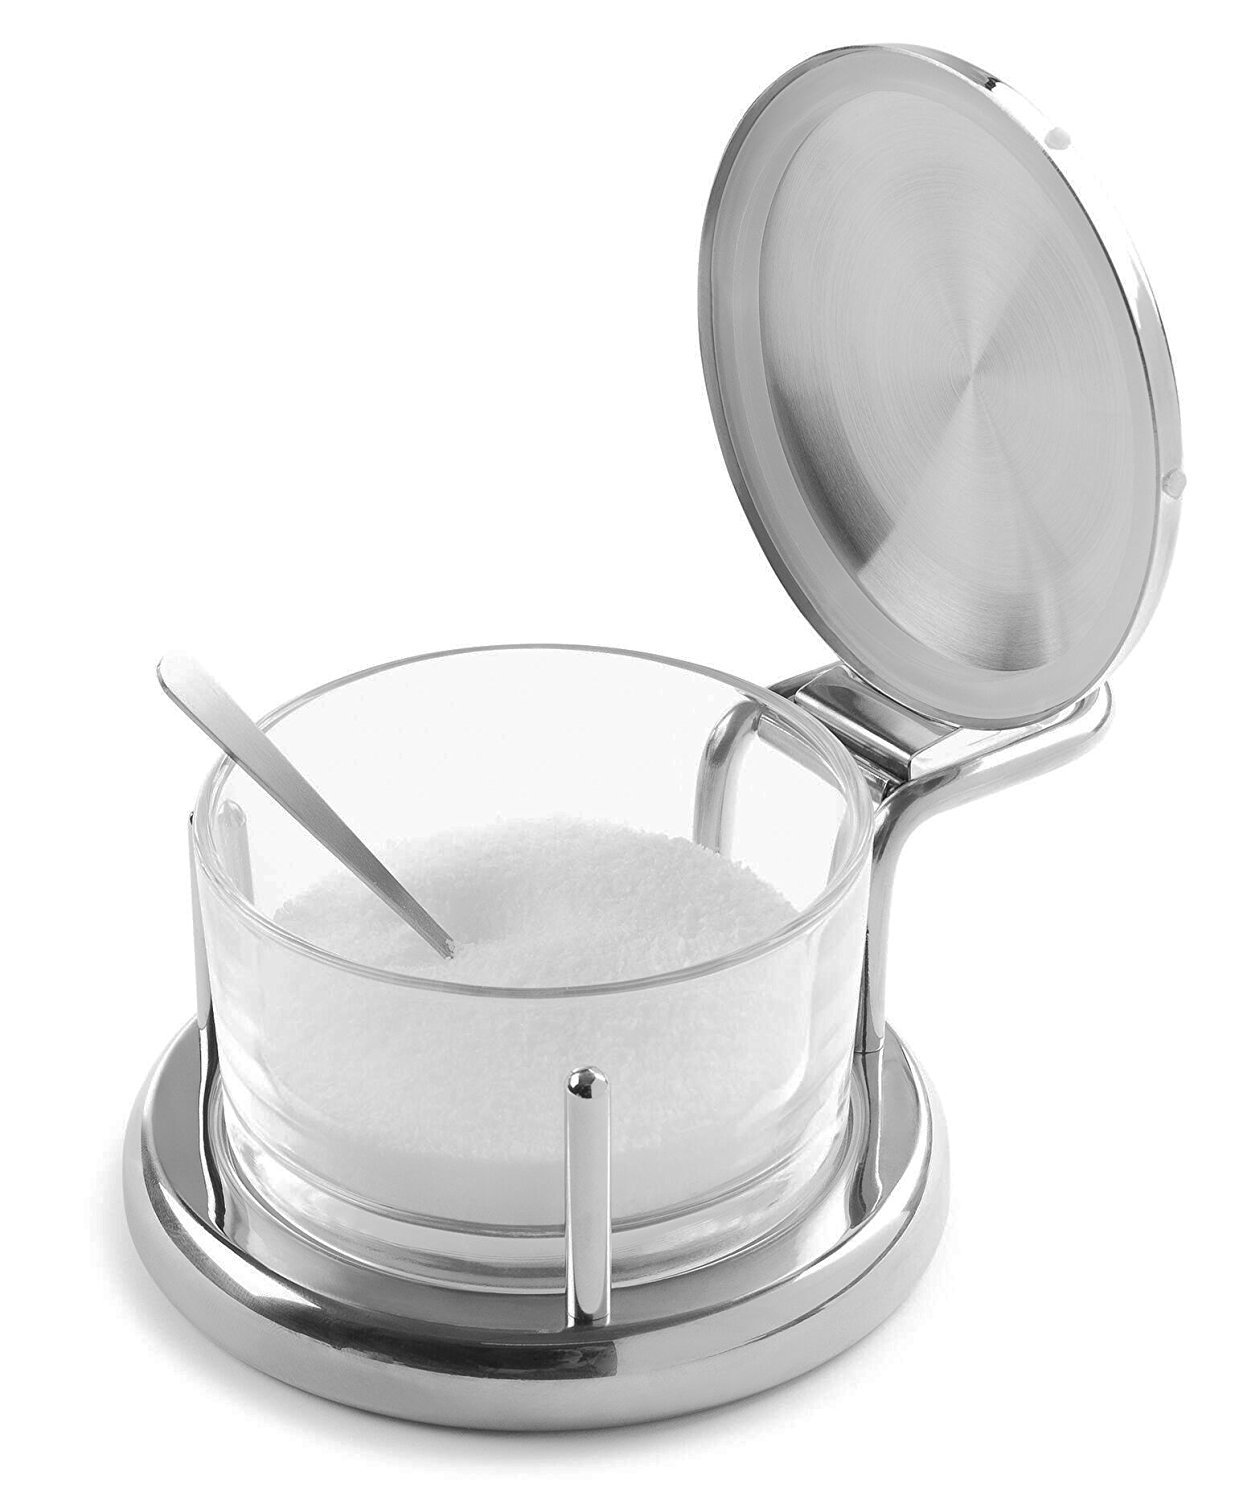 Modern Innovations Glass Salt Server with Lid and Spoon Stainless Steel 18/8 Serving Bowl Great for Storing Salt, Sugar, Honey, Cheese, Condiments, Spices & Herbs